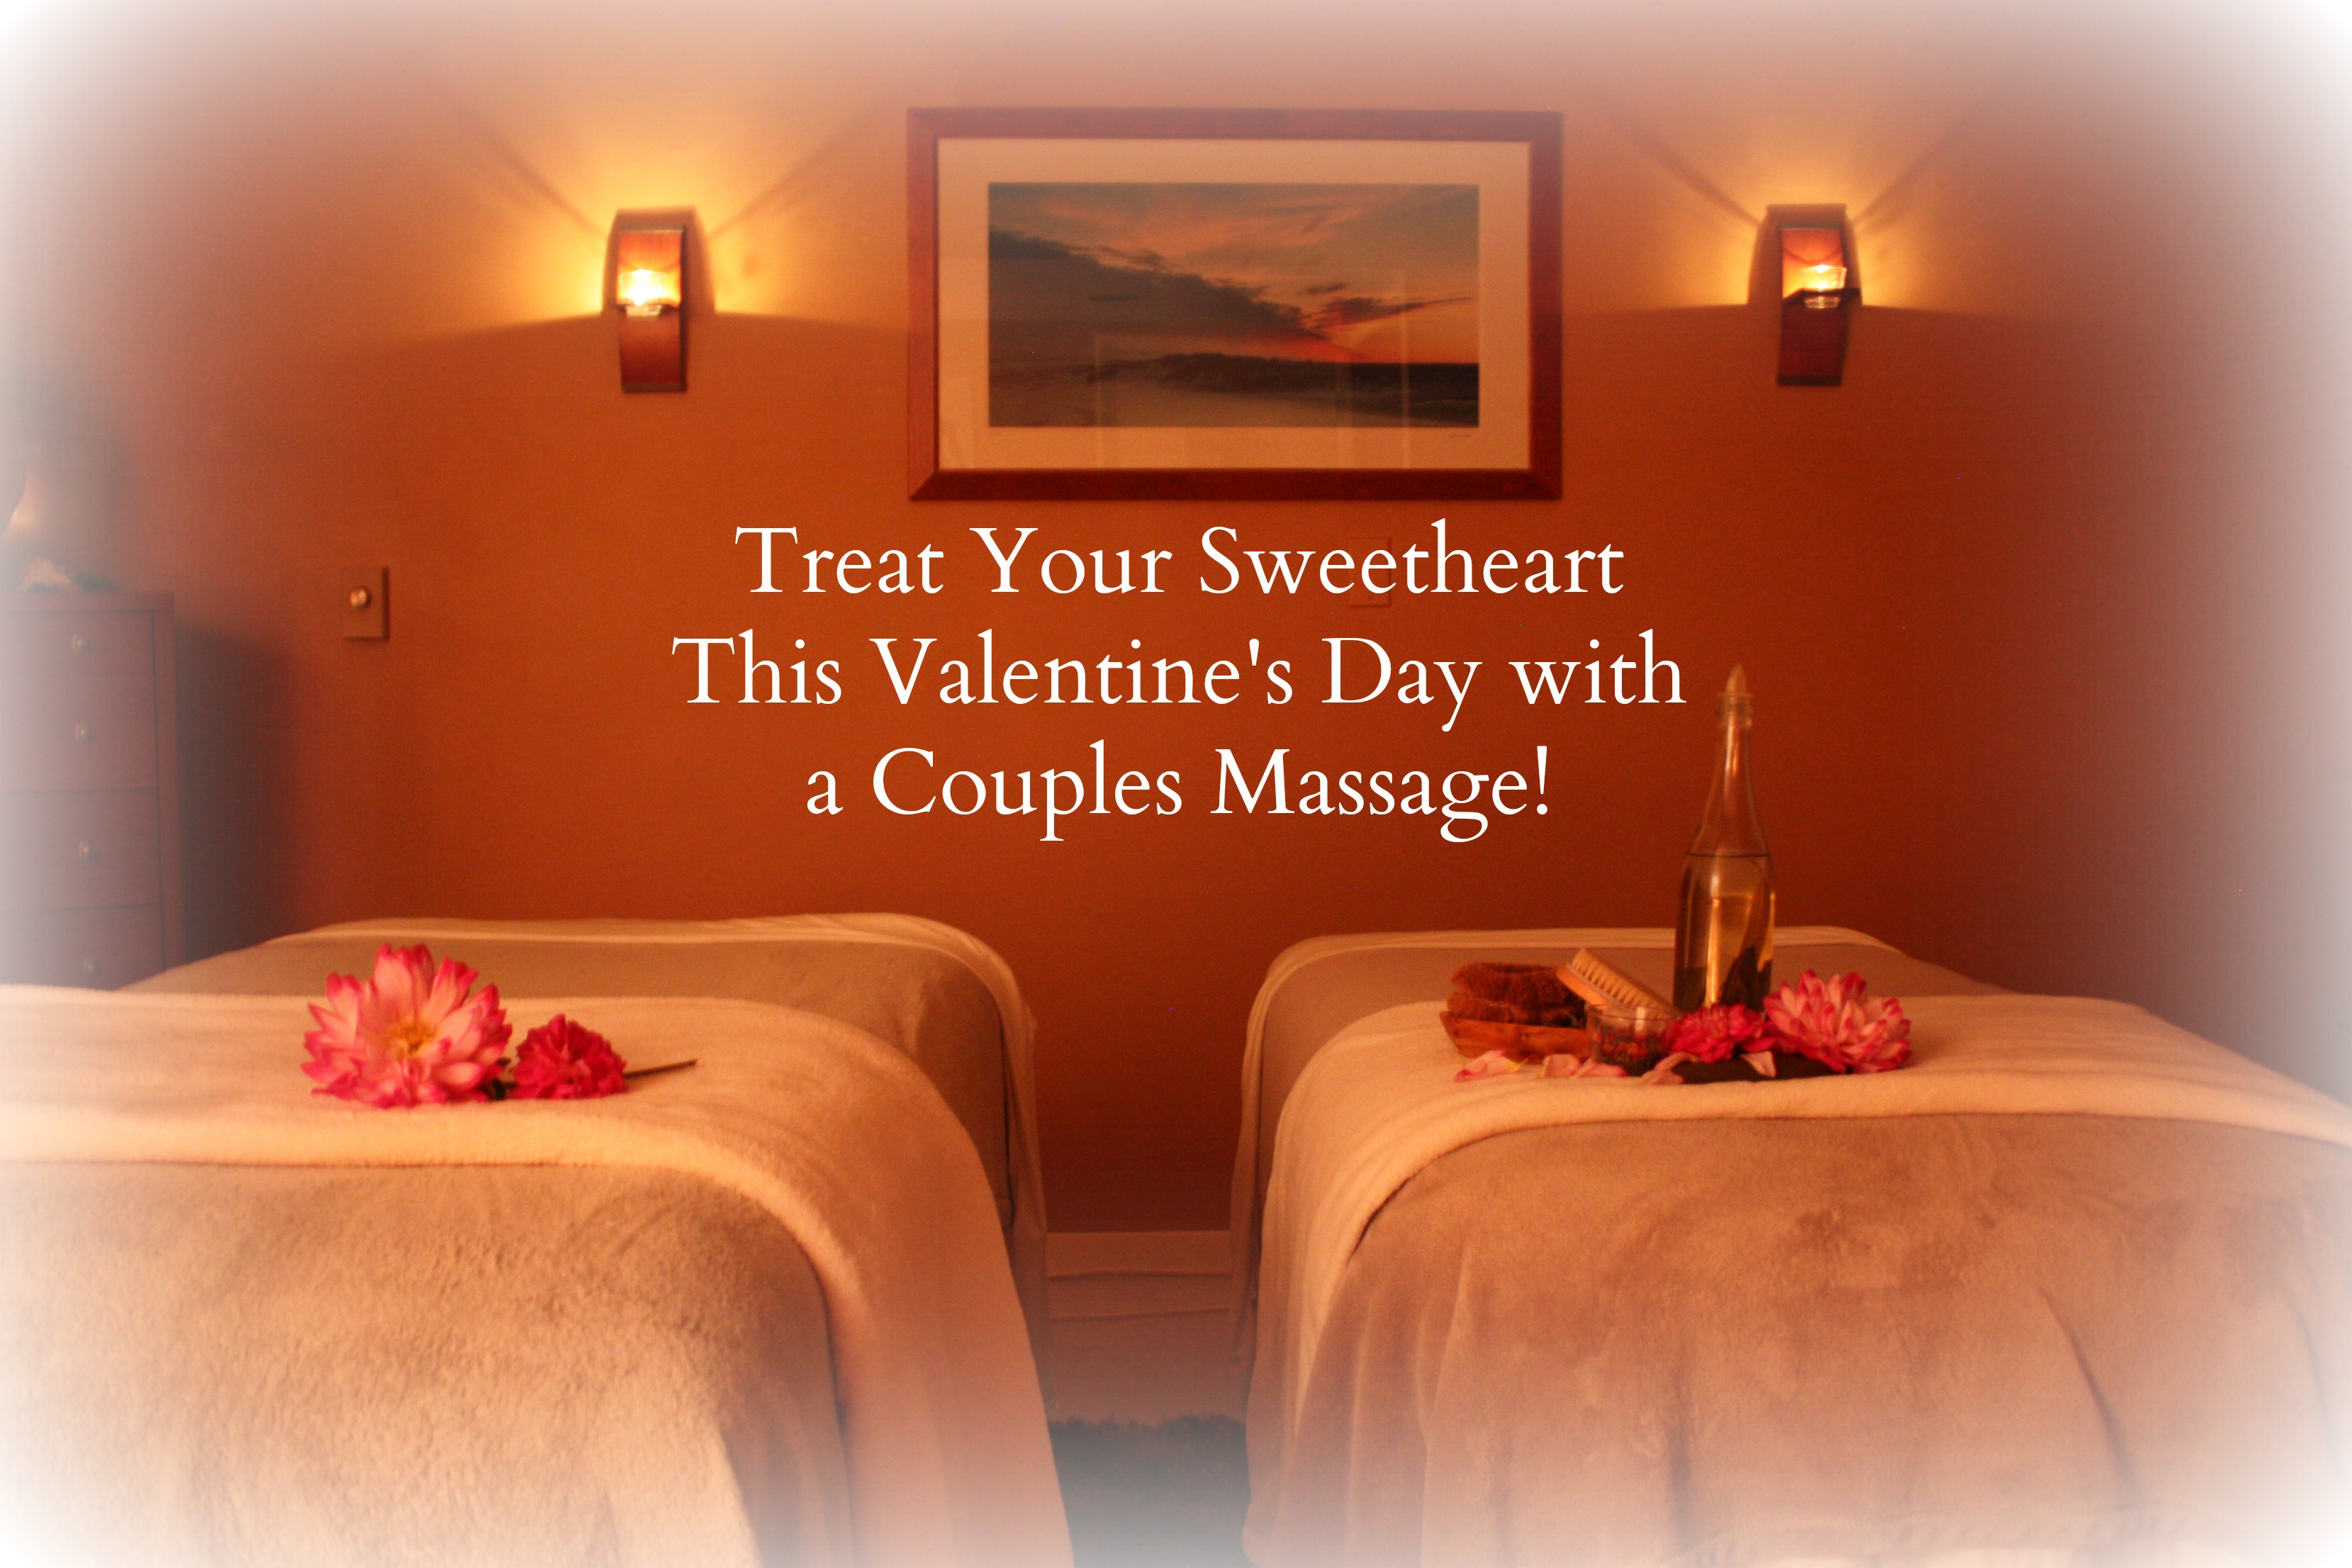 couples massage pittsburgh center for complementary health and healing